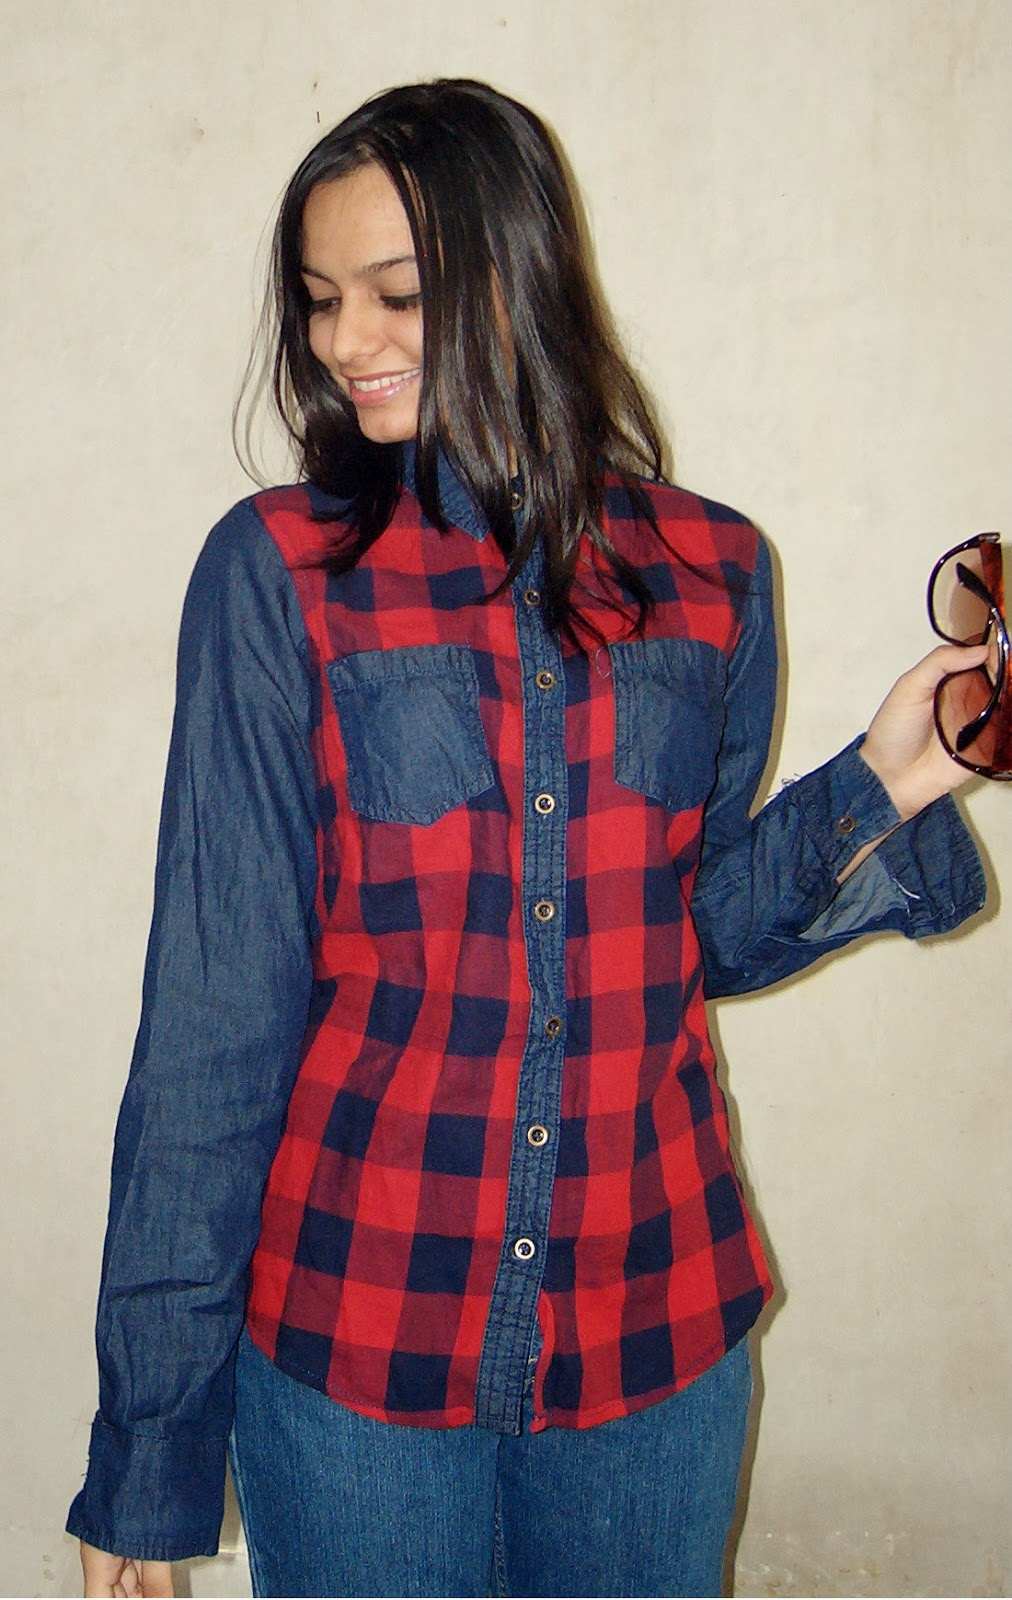 street shoppping, how to style a denim shirt, personal style, how to style tartan shirts, indian fashion blogger